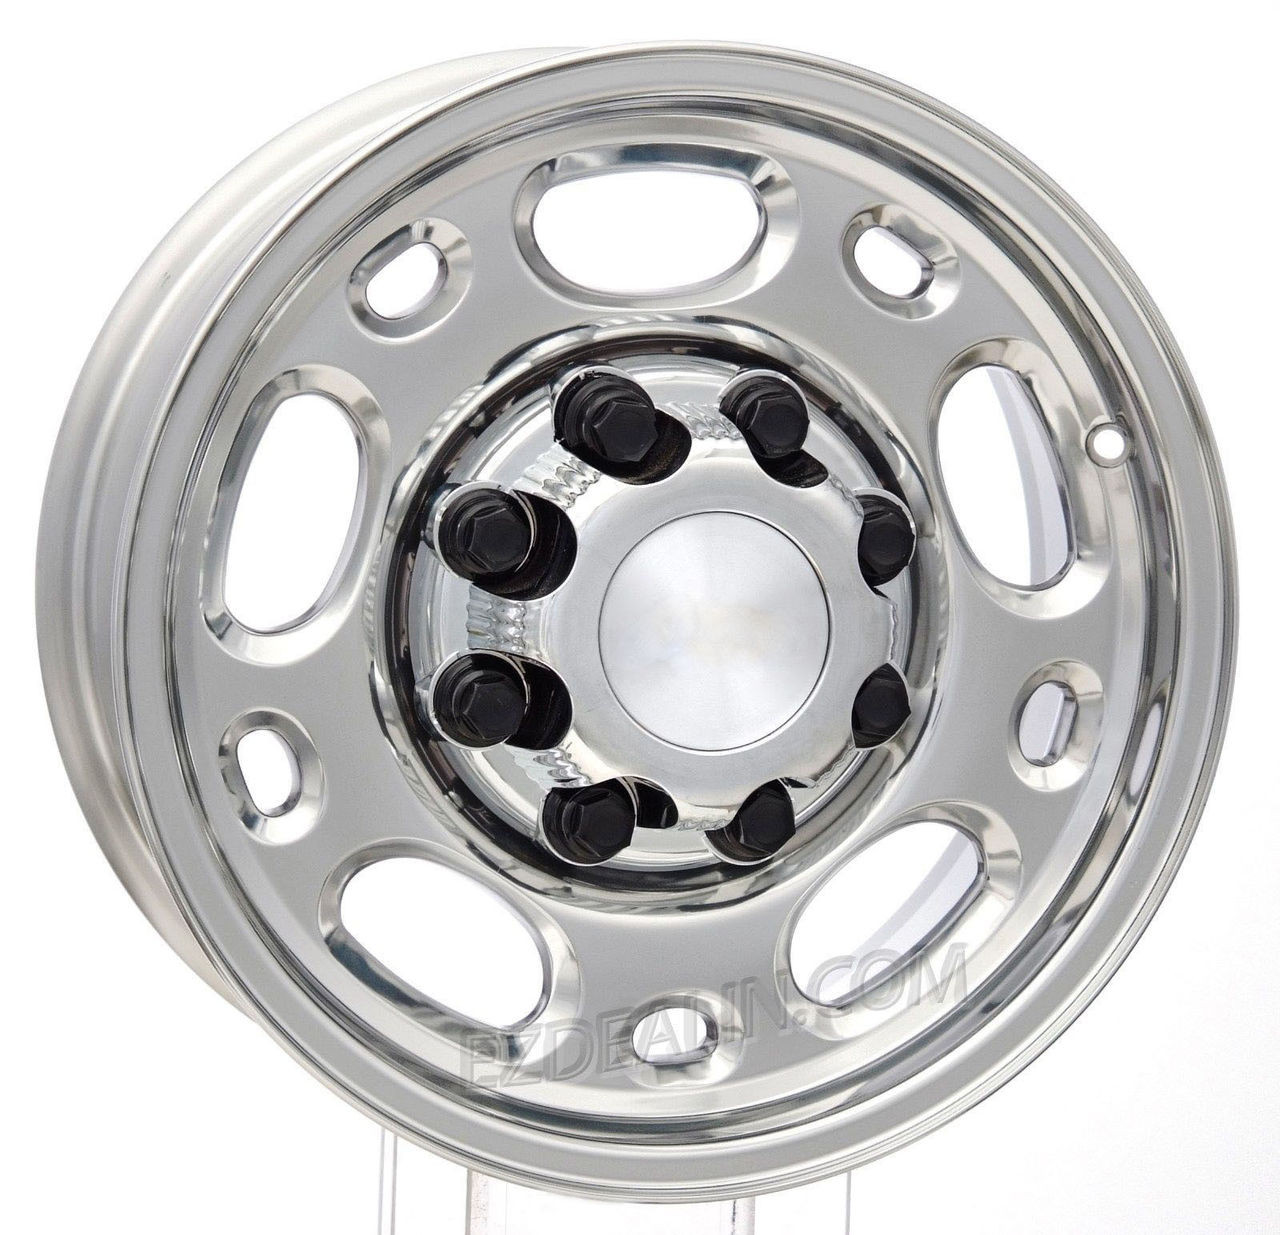 2001 Gmc Savana 2500 Passenger Transmission: 16 Inch 8 Lug Alloy Wheels For GMC 2500 3500 HD Duramax